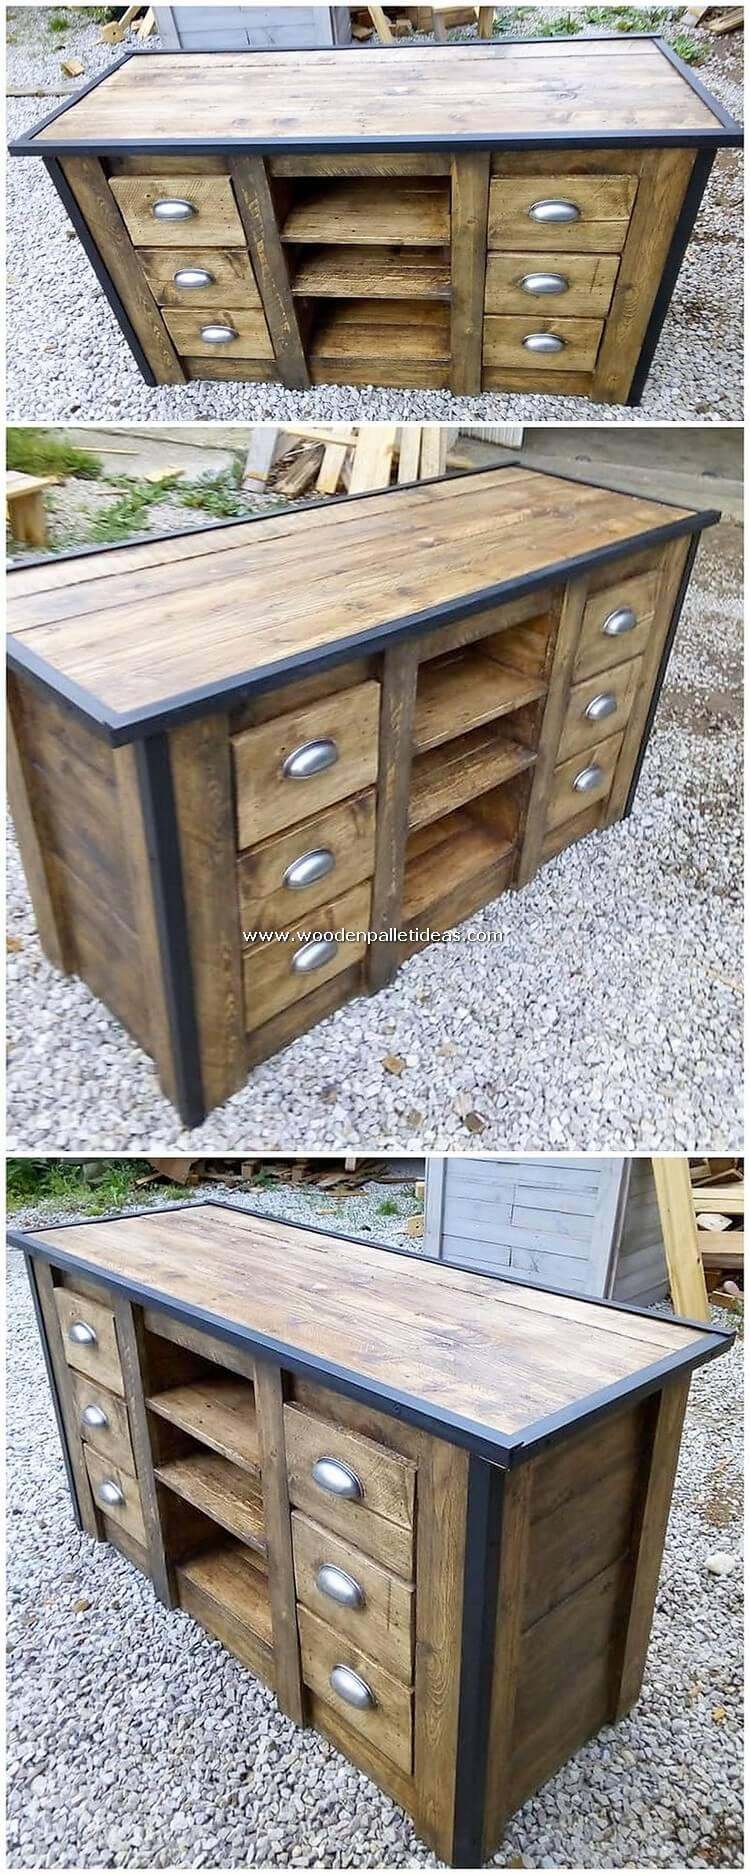 Recycled-Pallet-Wood-Cabinet